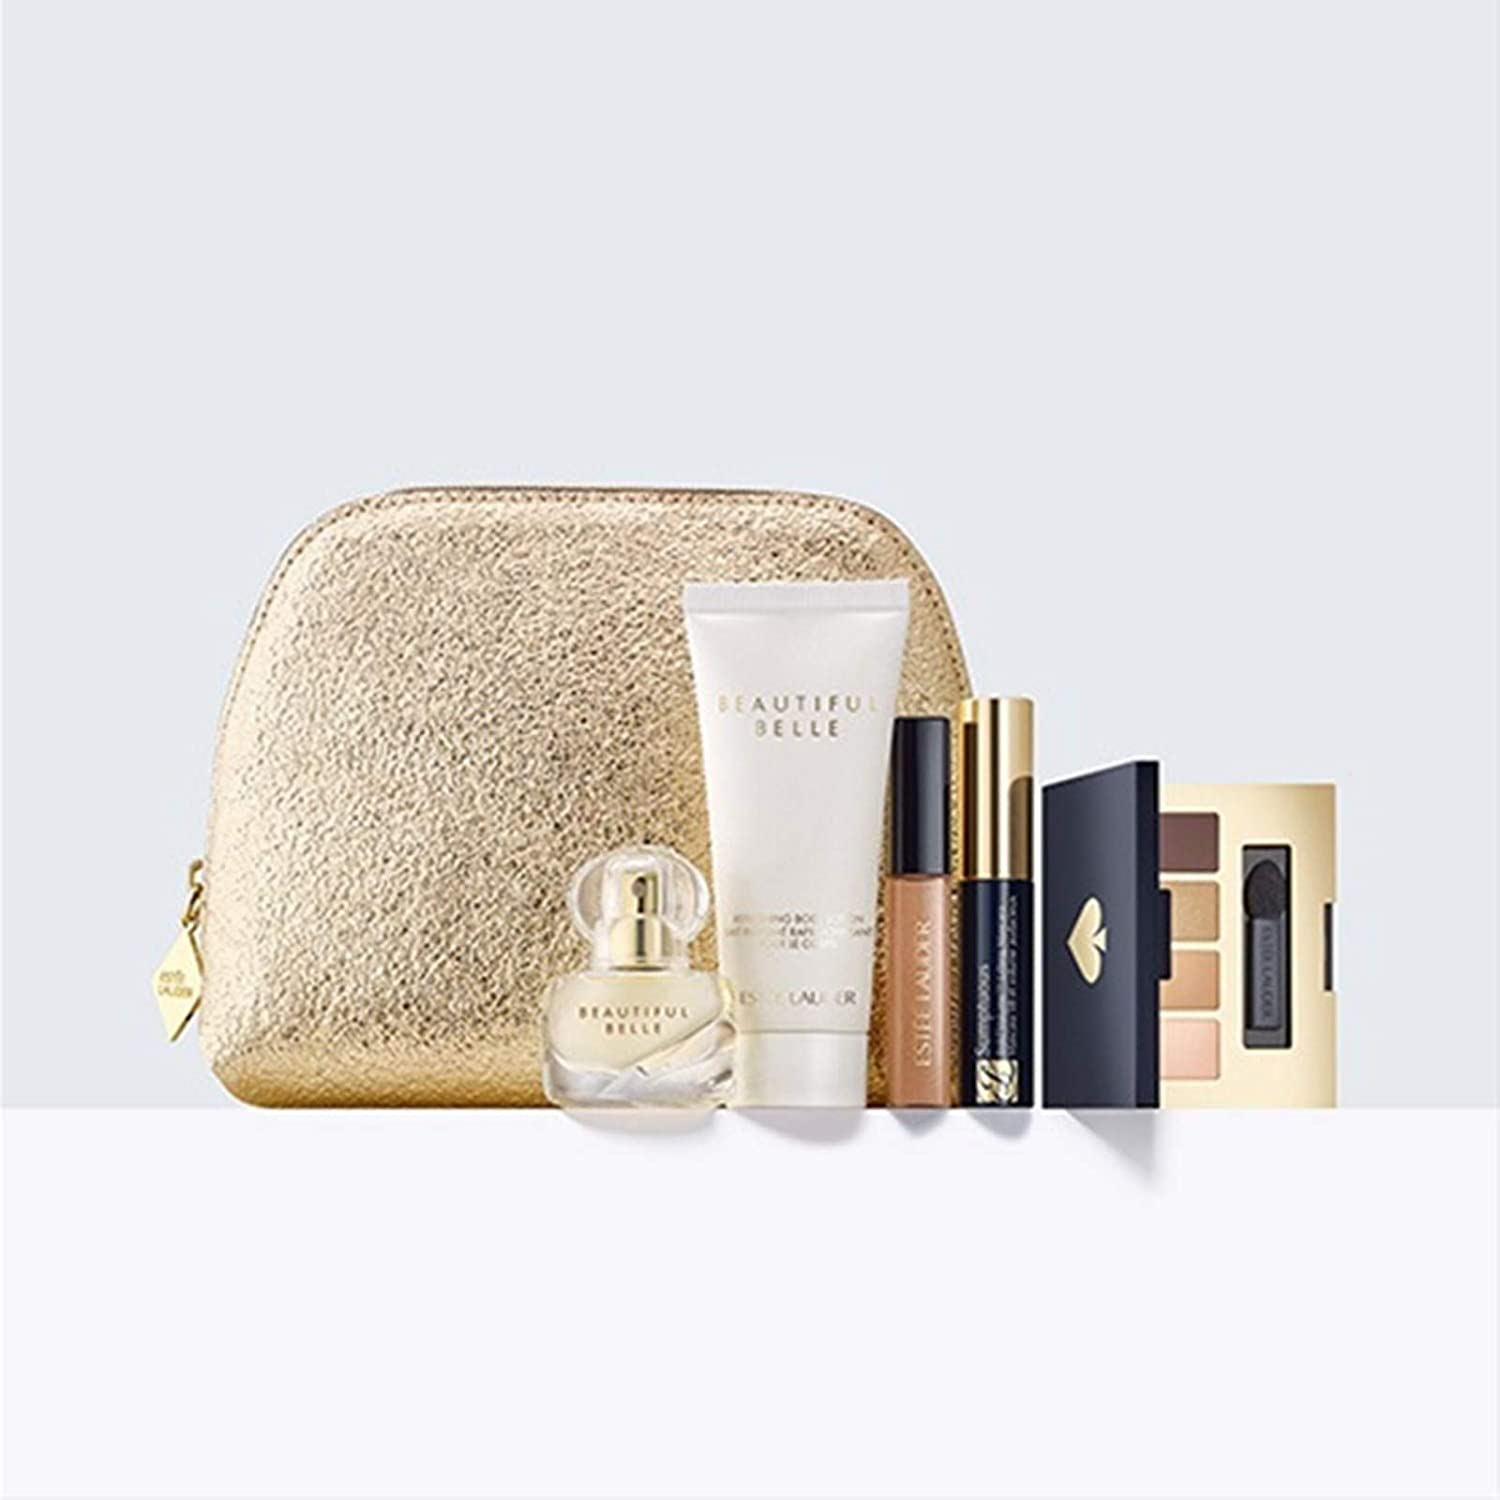 Estee Lauder 6 pc Beautiful Belle Eau de Parfum Purse Spray Travel Set